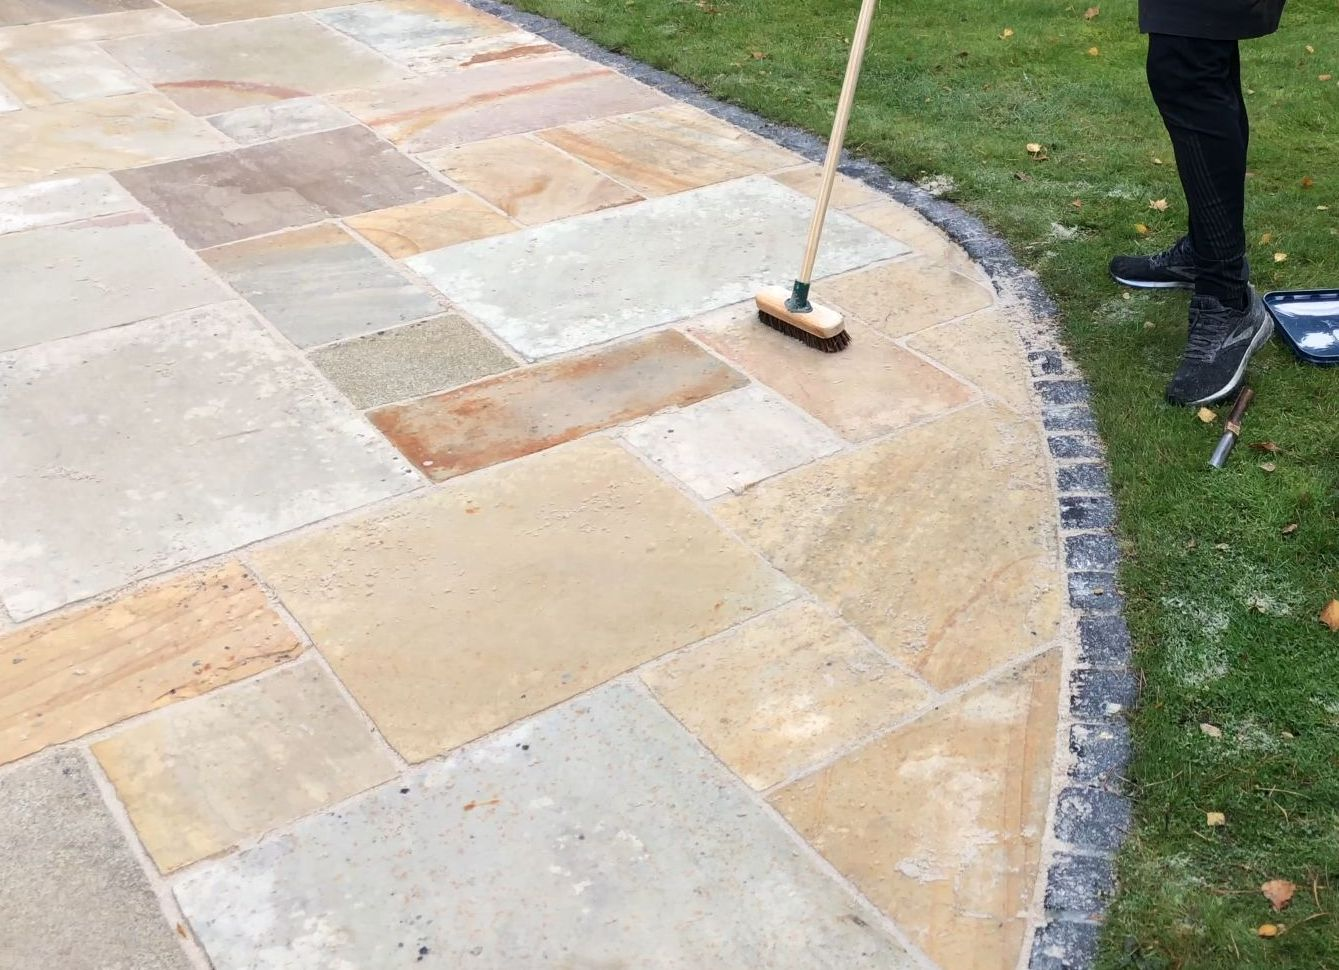 Sandstone after cleaning and filling with wide jointing compound